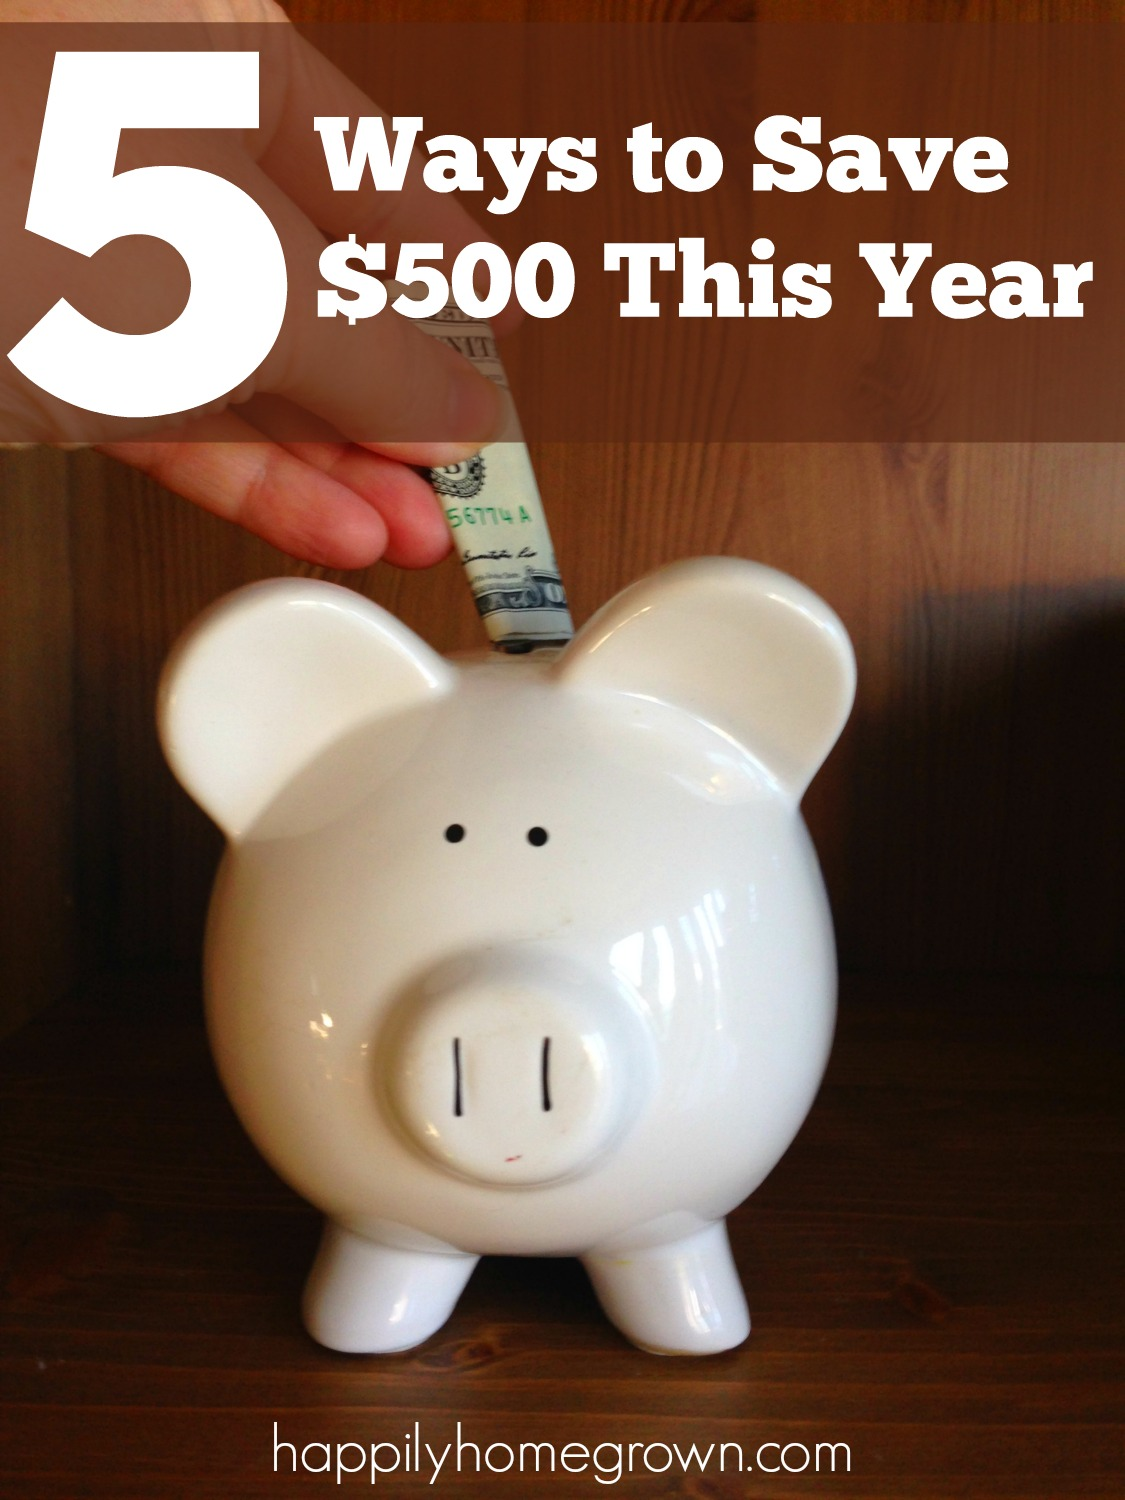 5 Ways to Save $500 This Year, savings